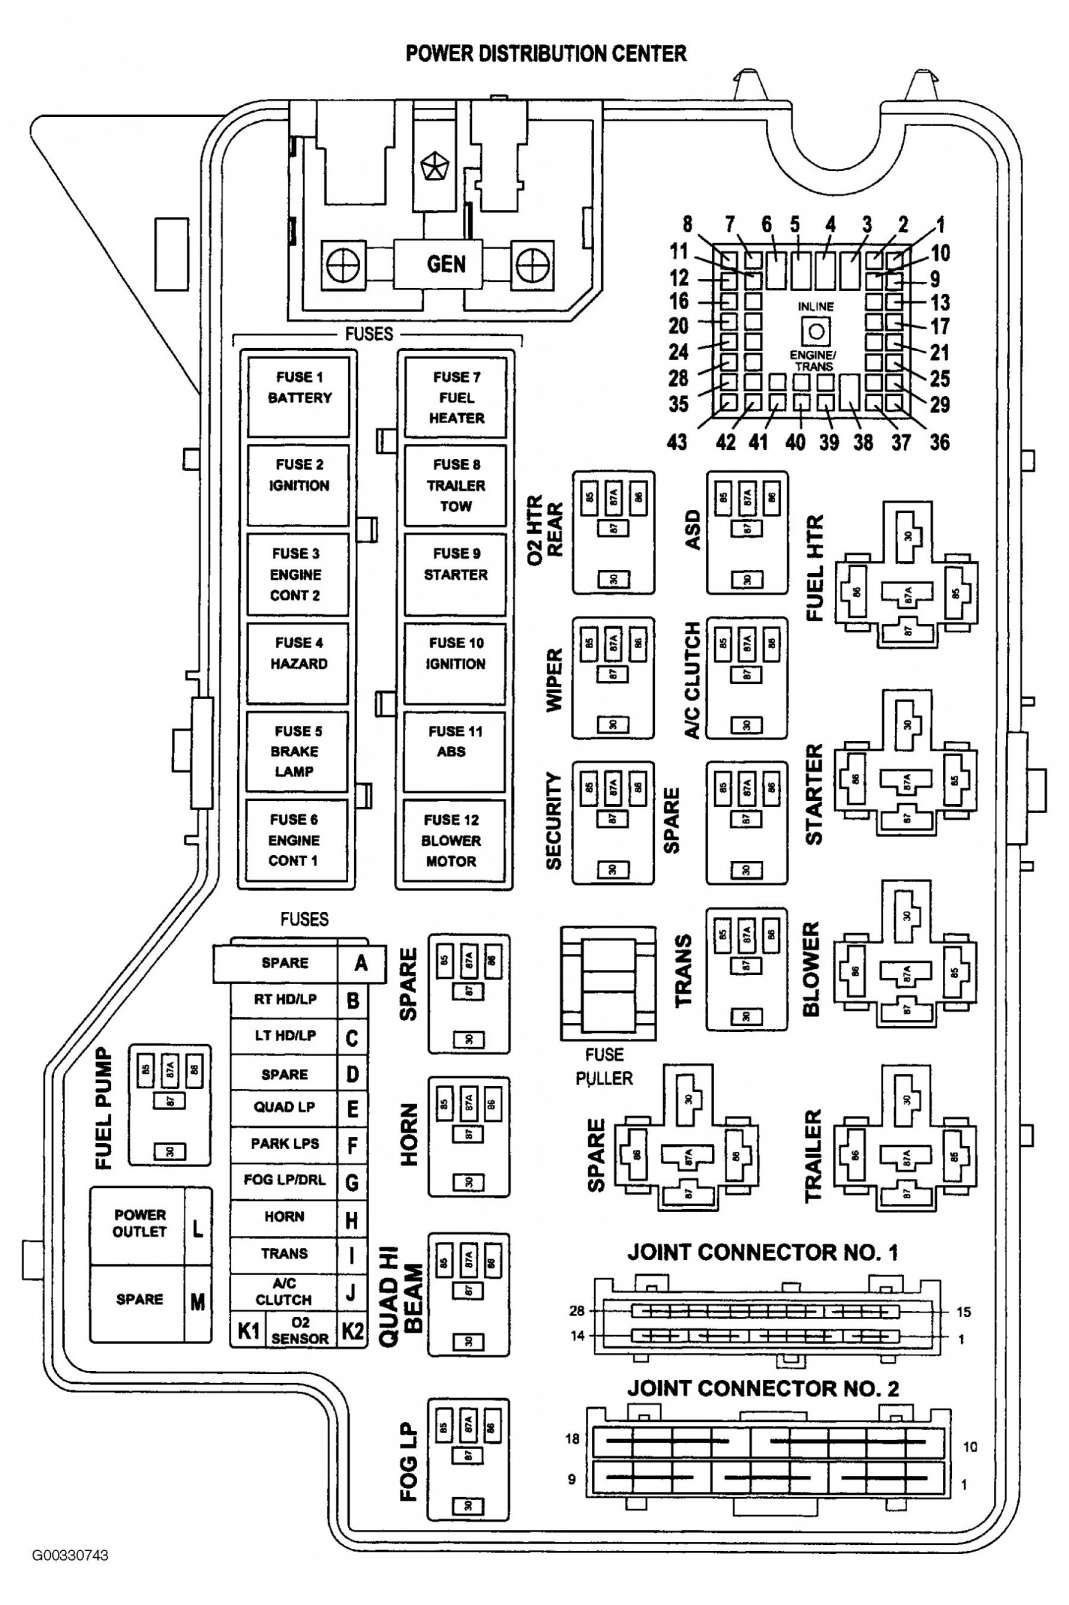 2004 dodge ram fuse box diagram - wiring diagram schematic love-heel -  love-heel.aliceviola.it  aliceviola.it